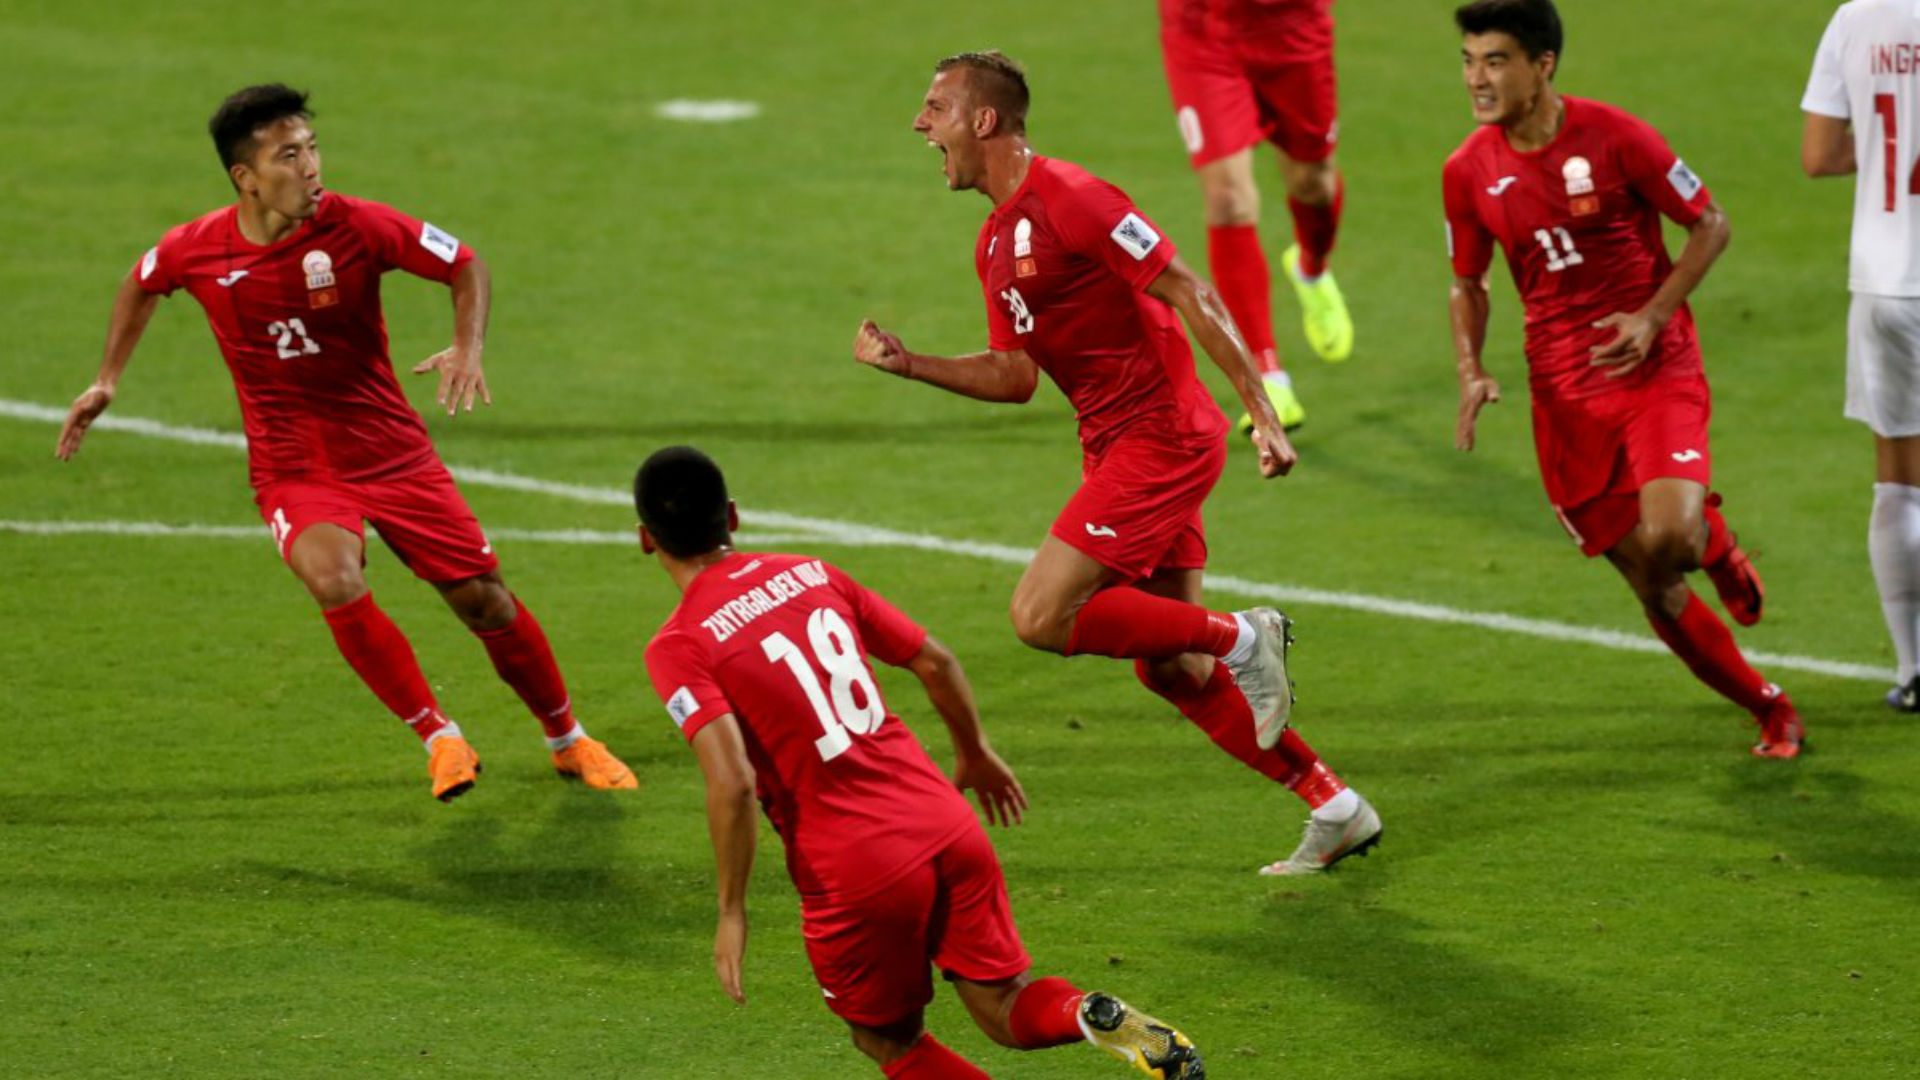 Kyrgyzstan 3 Philippines 1: Lux hat-trick gives White Falcons third-place hope